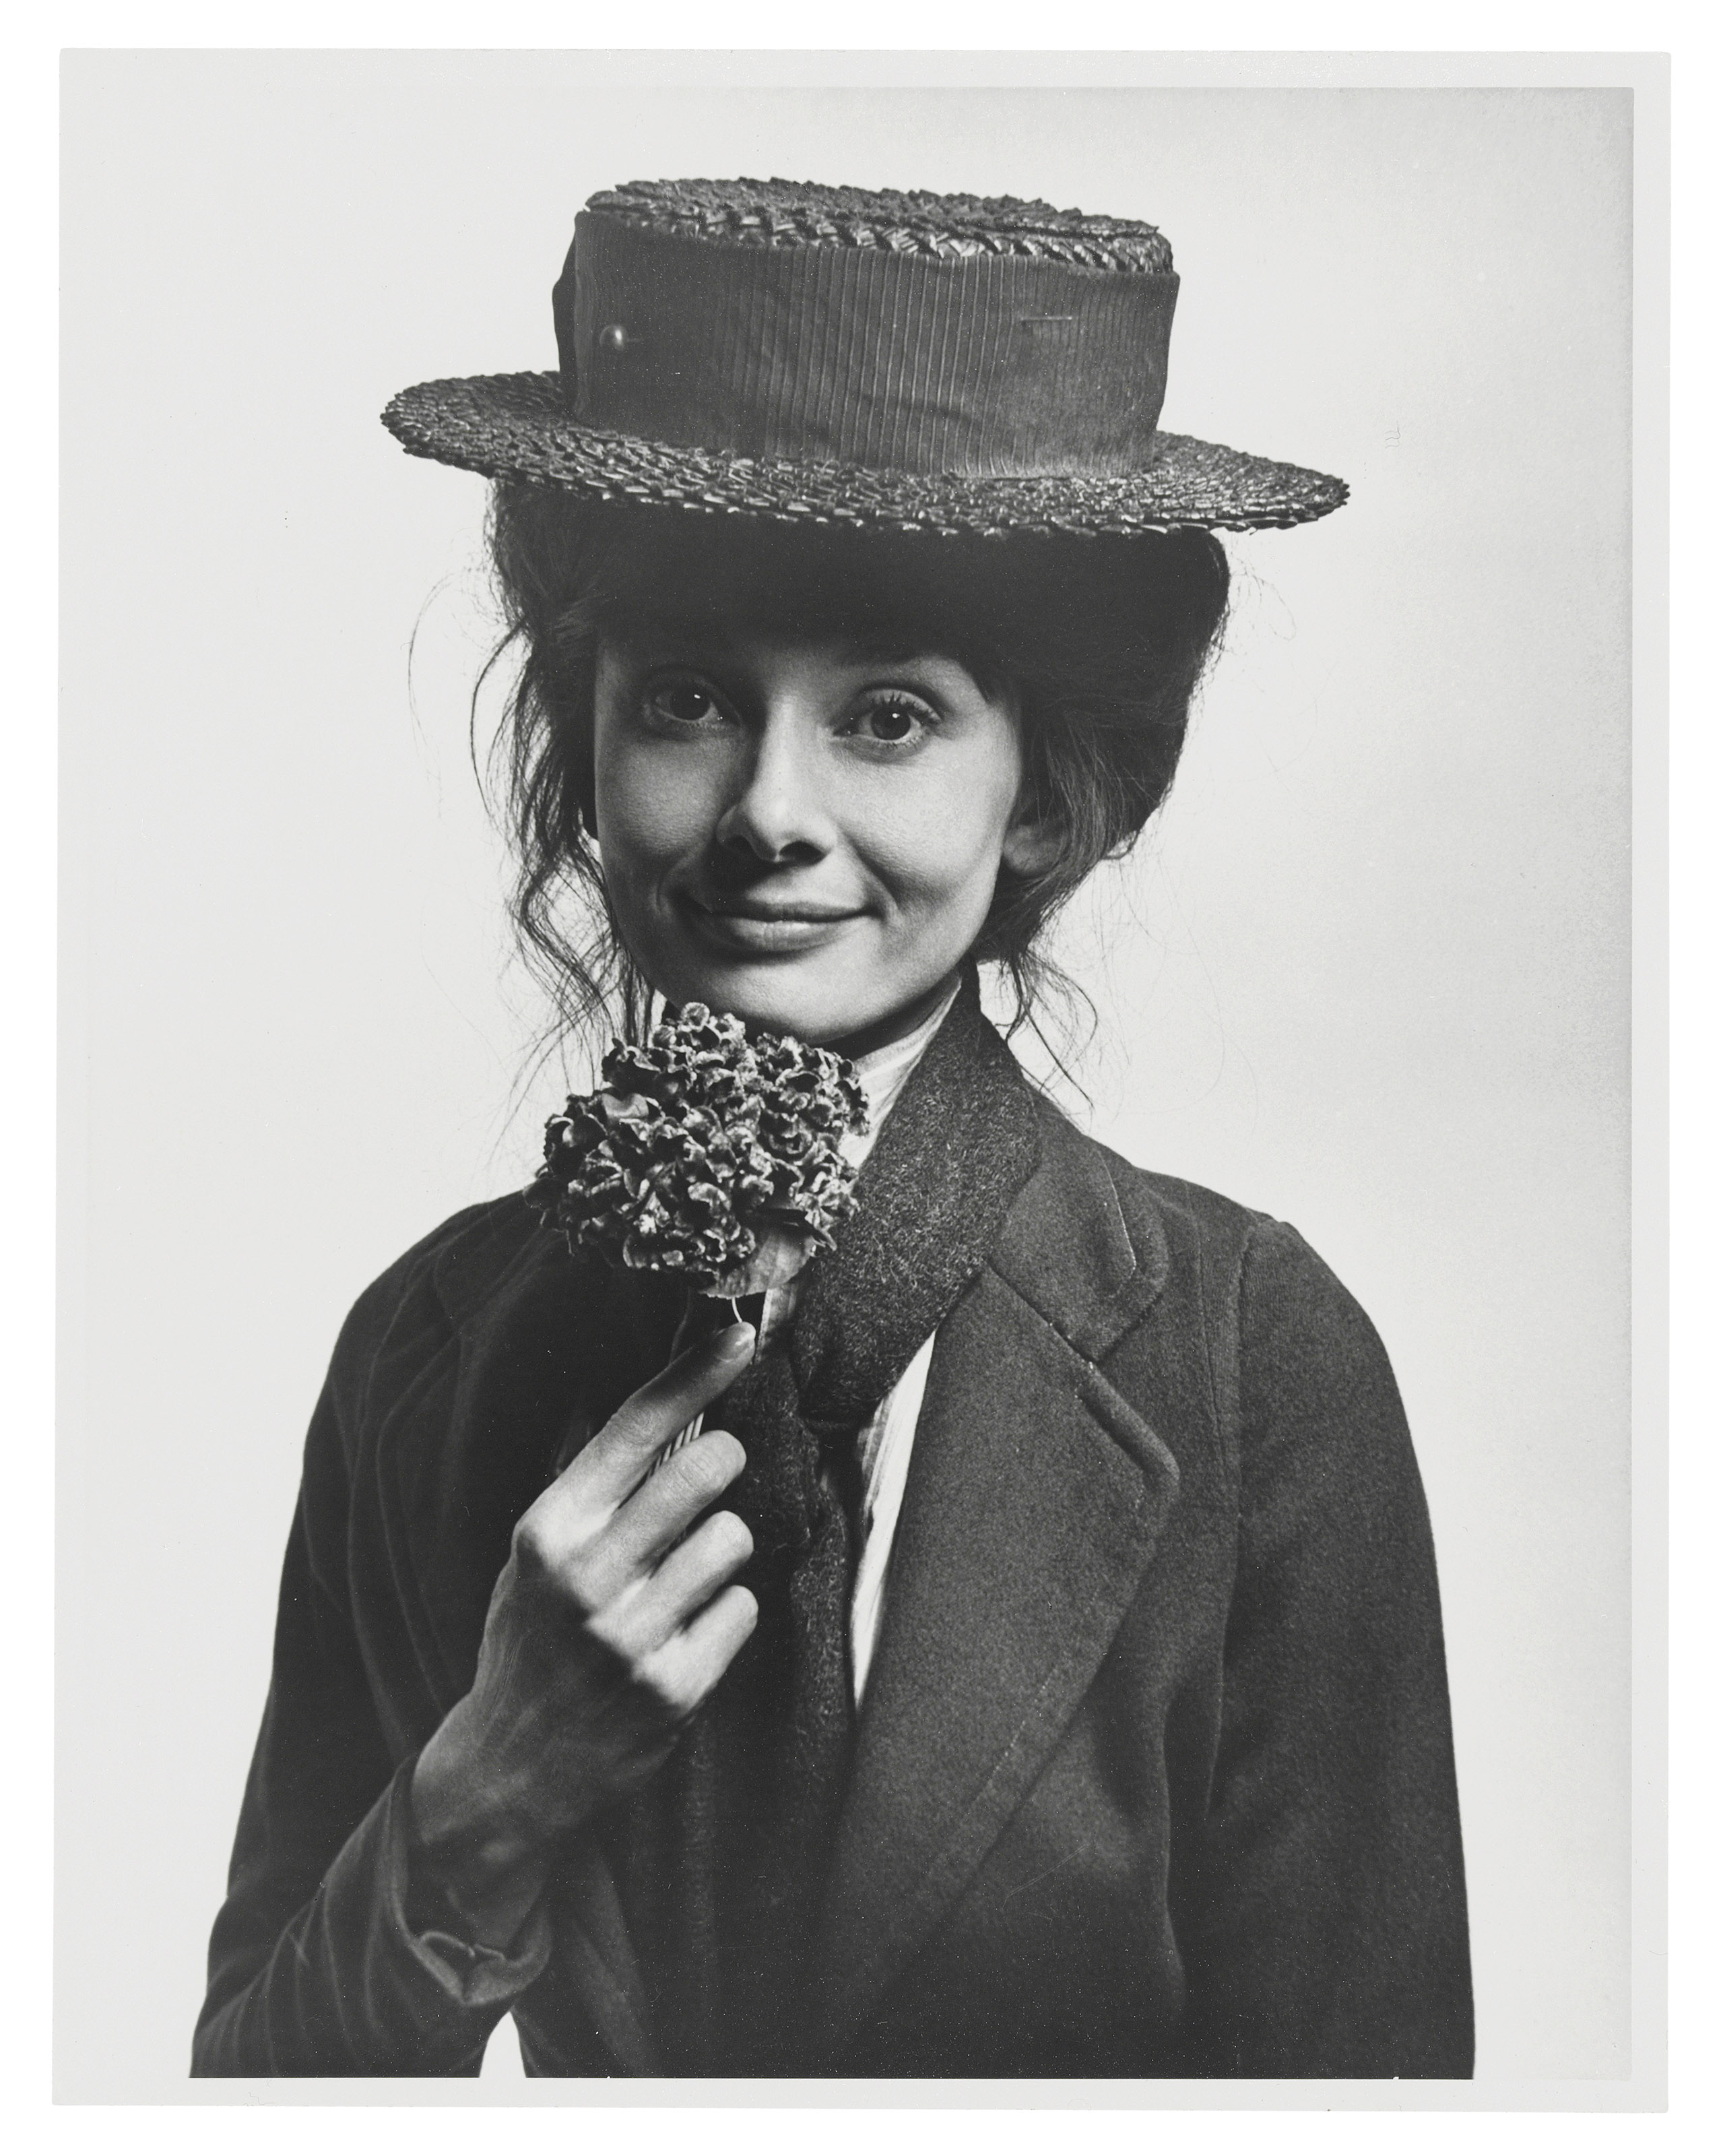 Audrey Hepburn as Eliza Doolittle, 1963